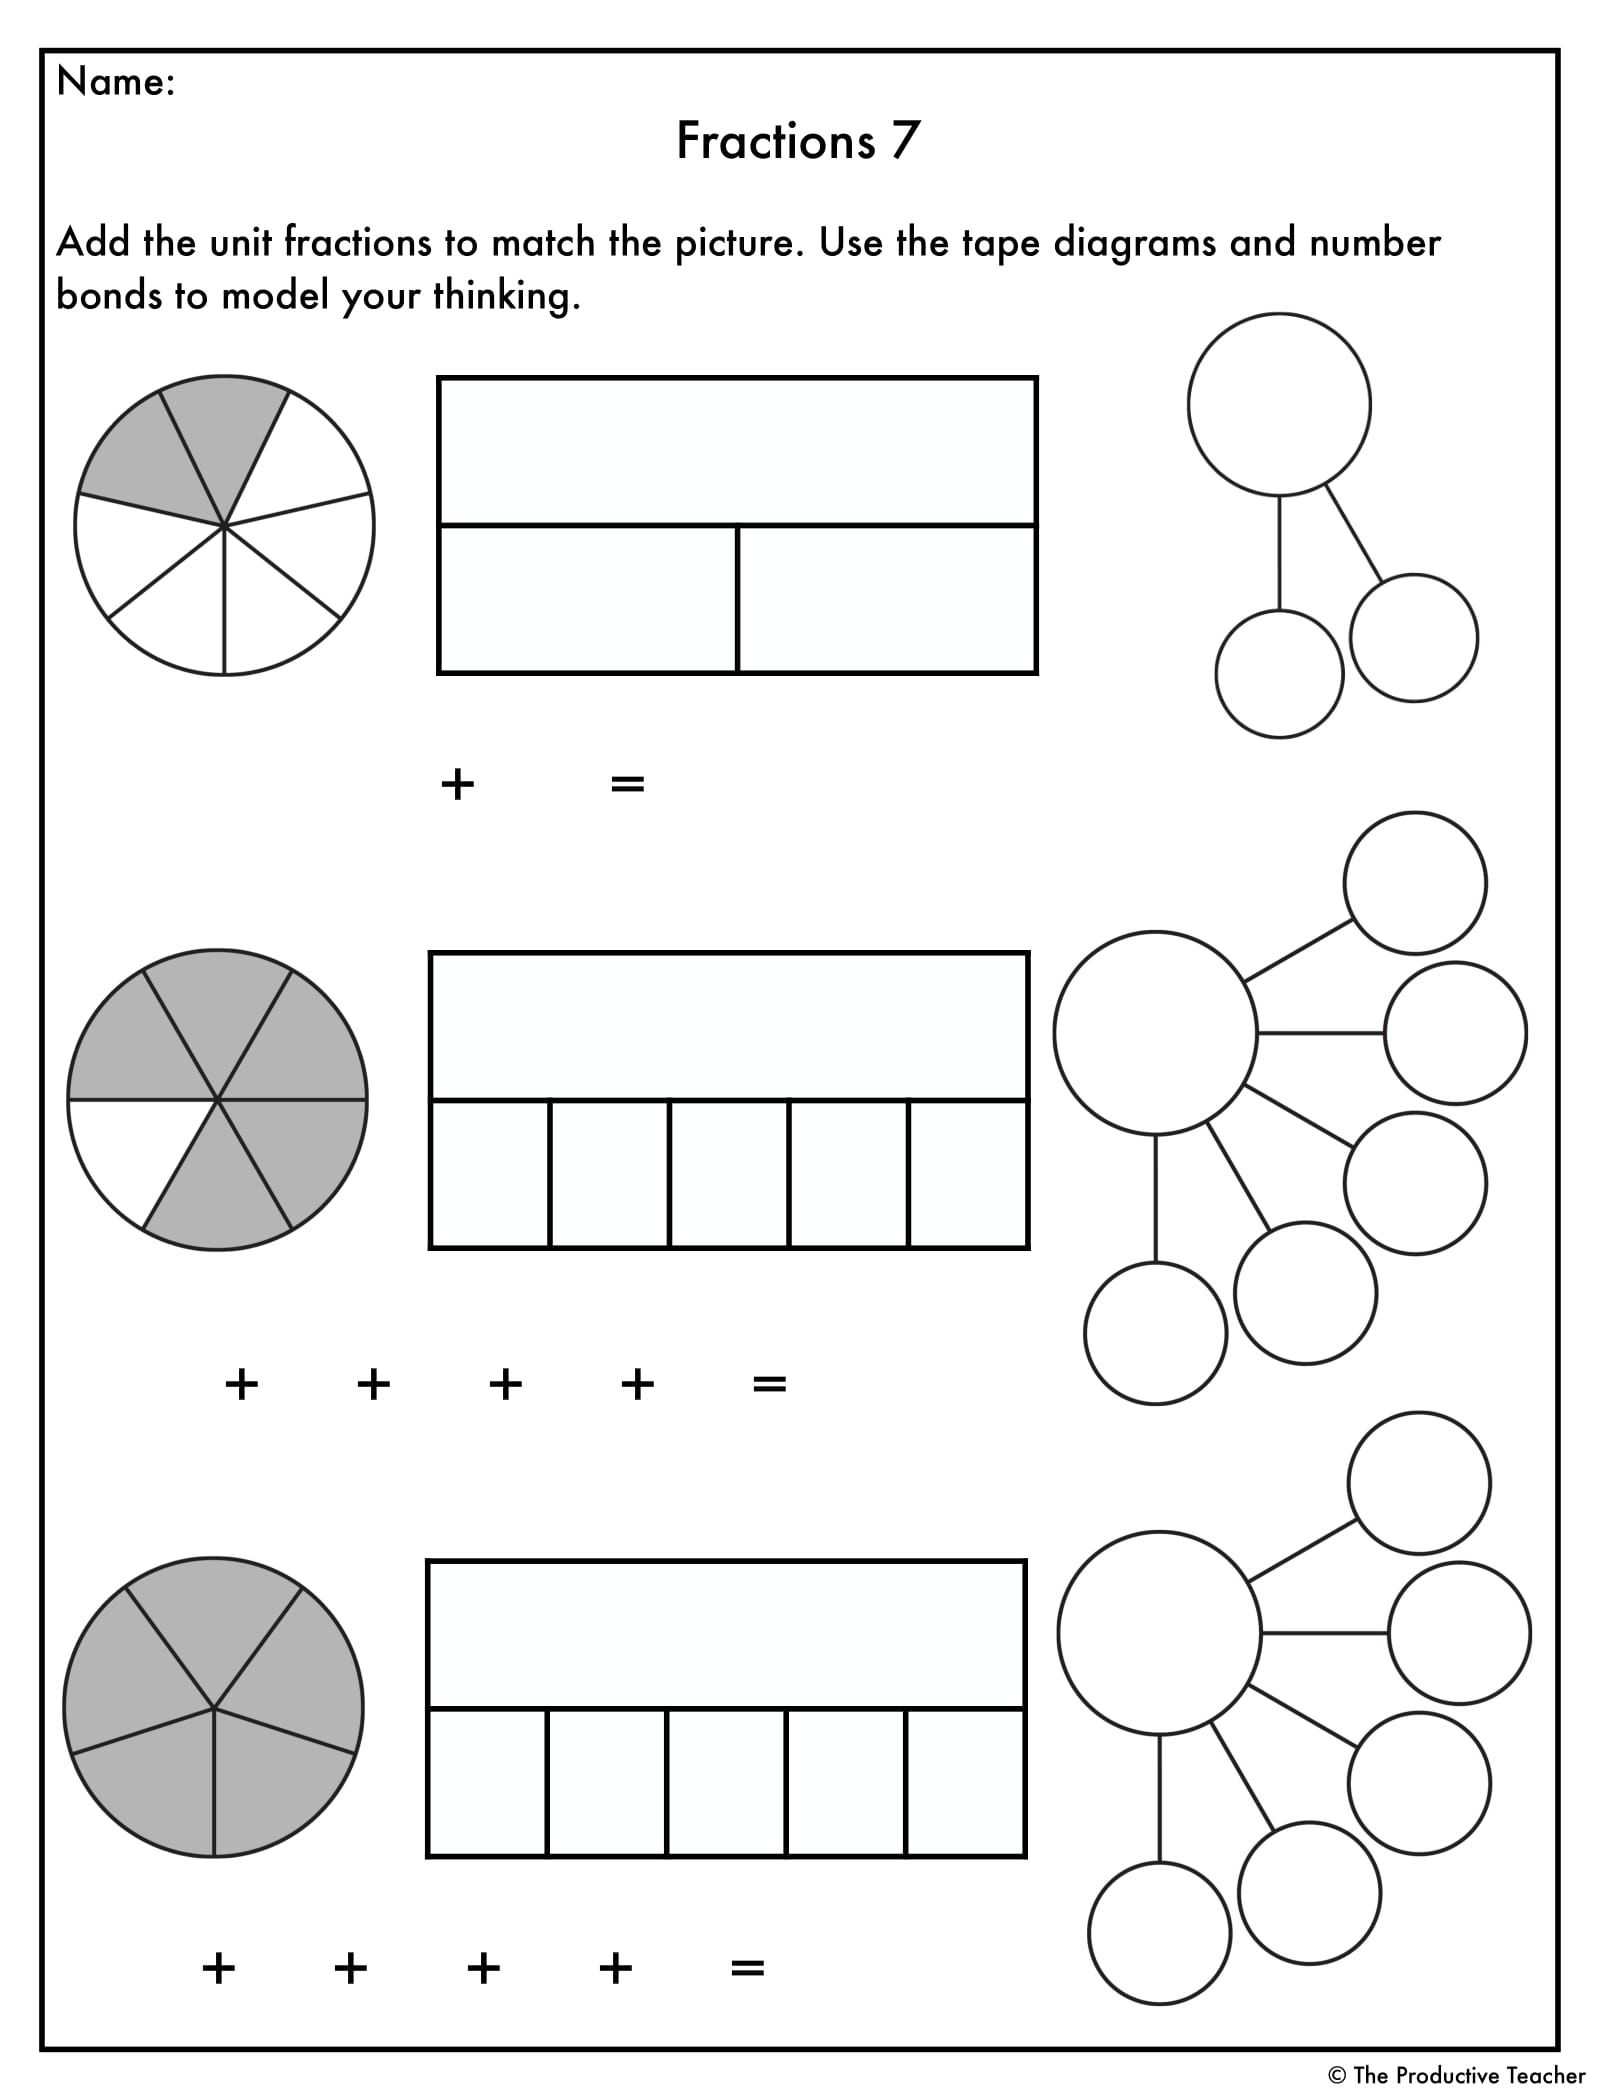 Adding Fractions With Models Worksheets